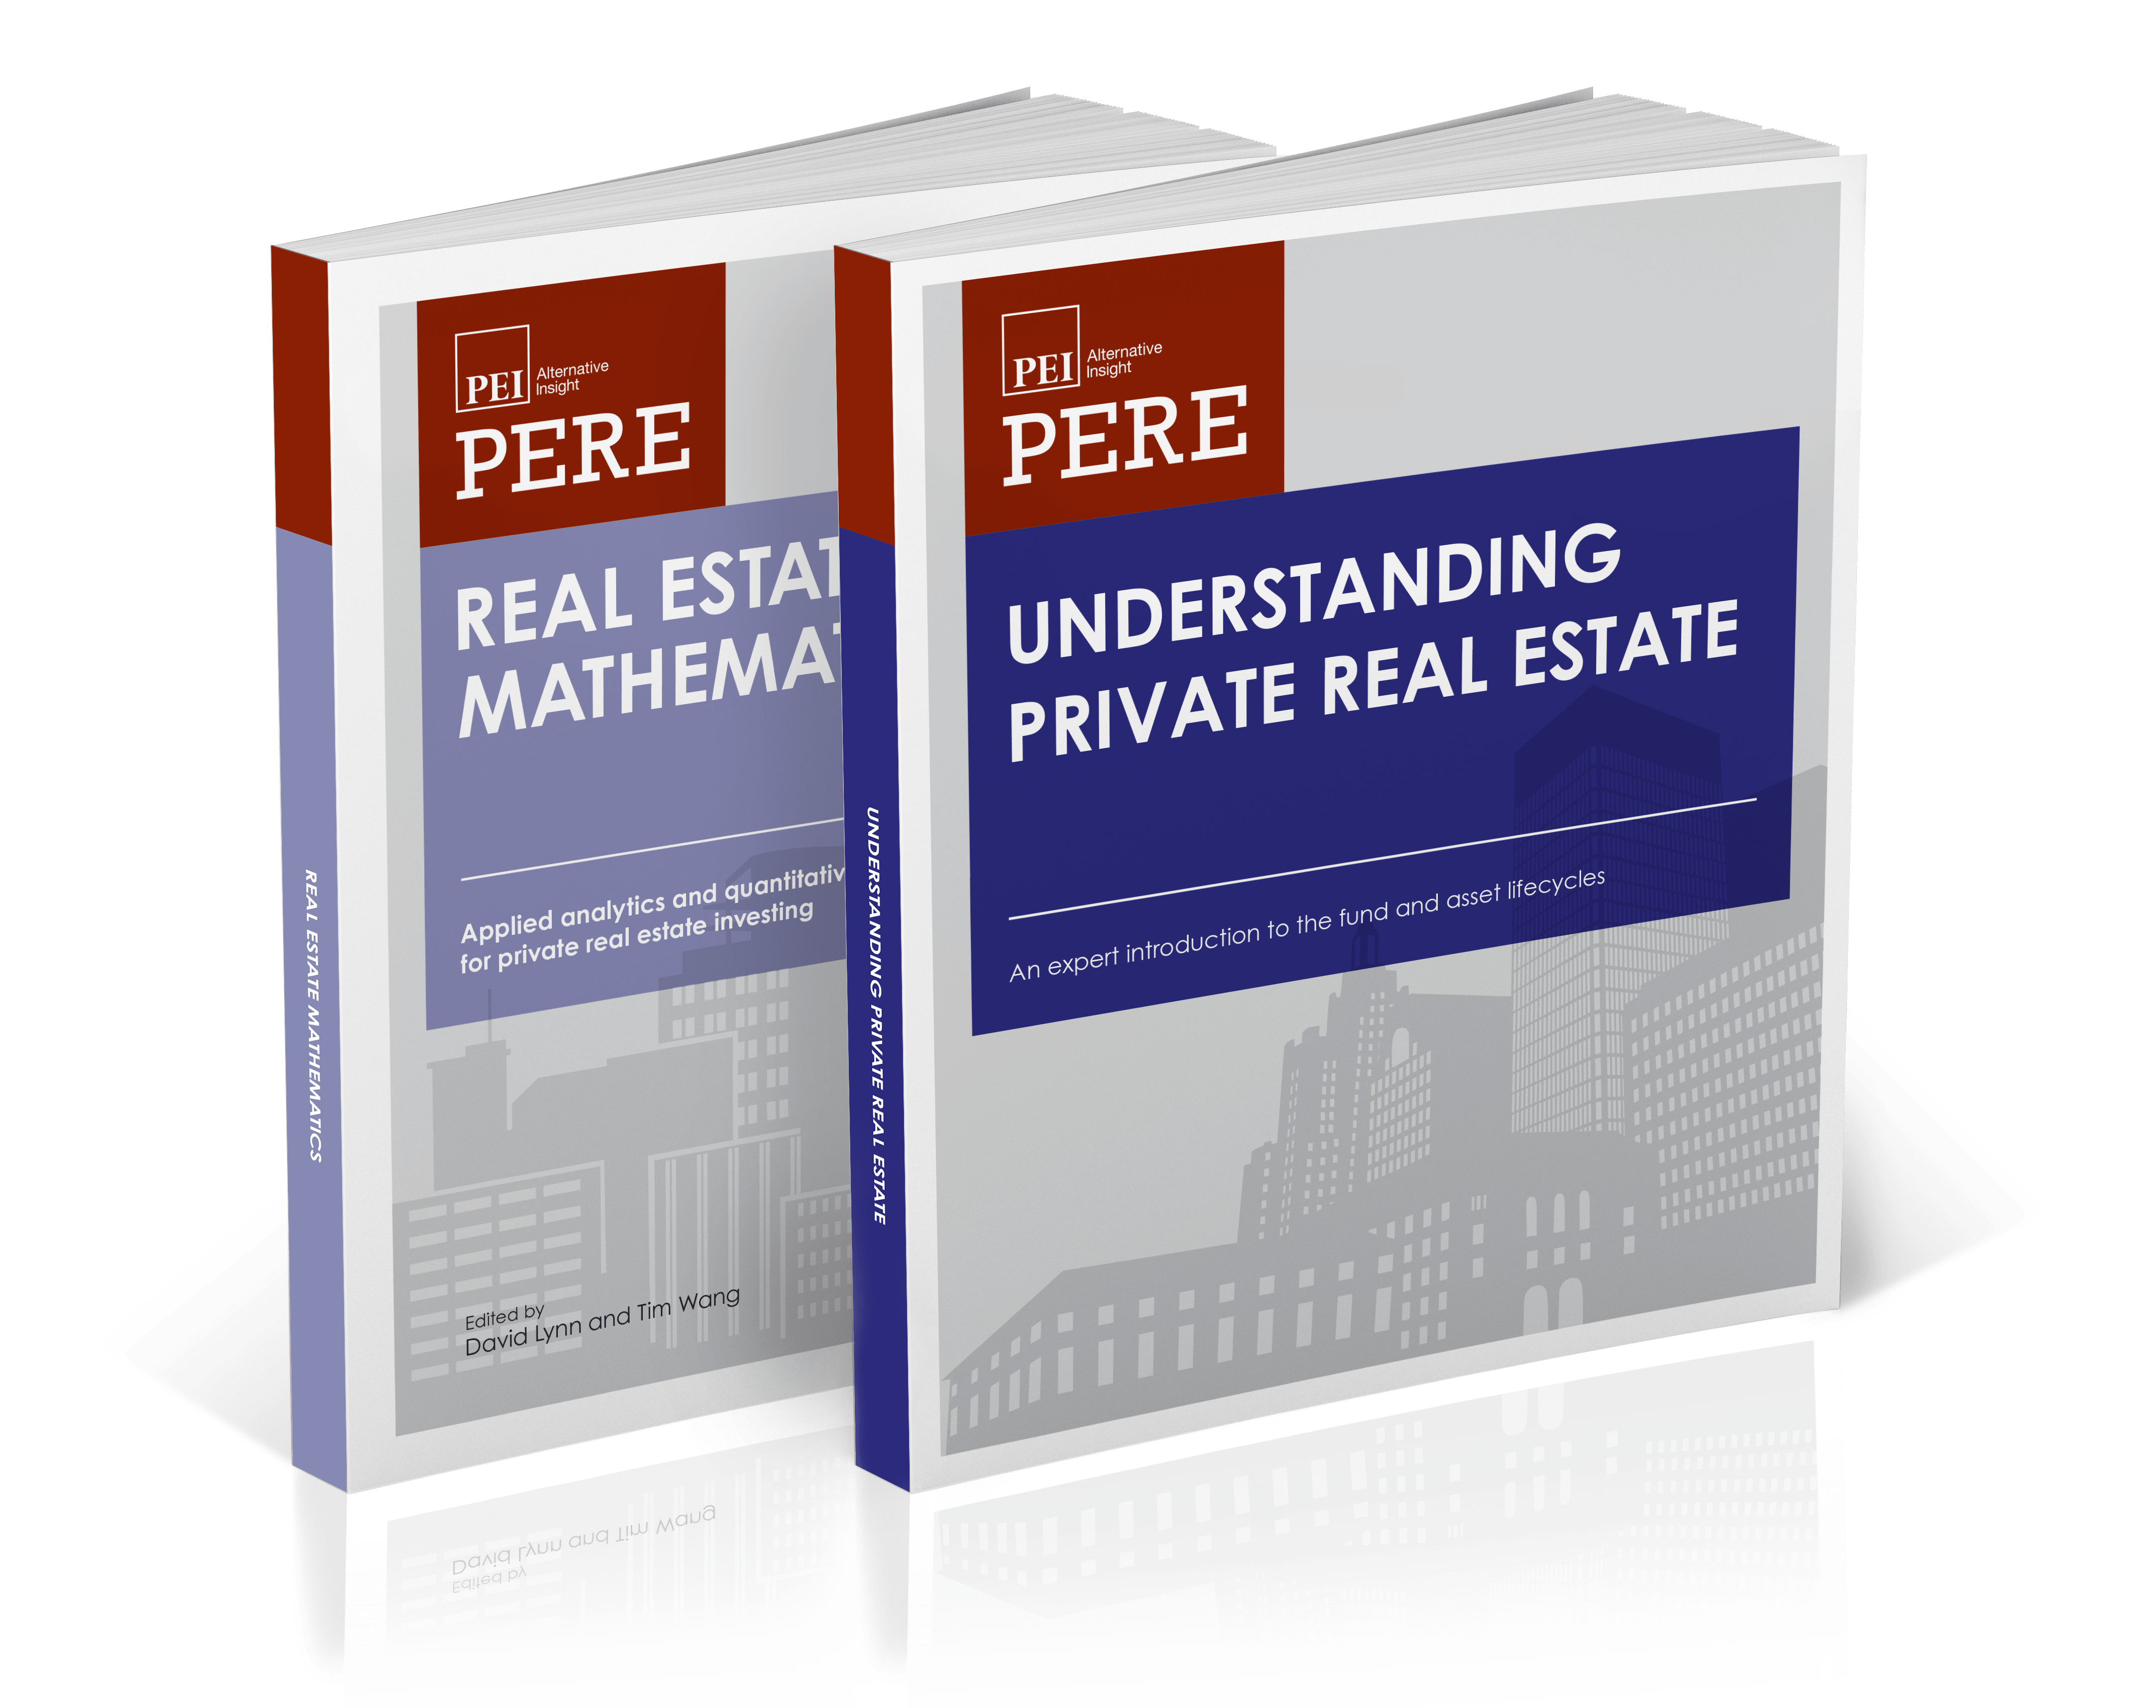 Real Estate Mathematics and Understanding Real Estate - Private Equity International